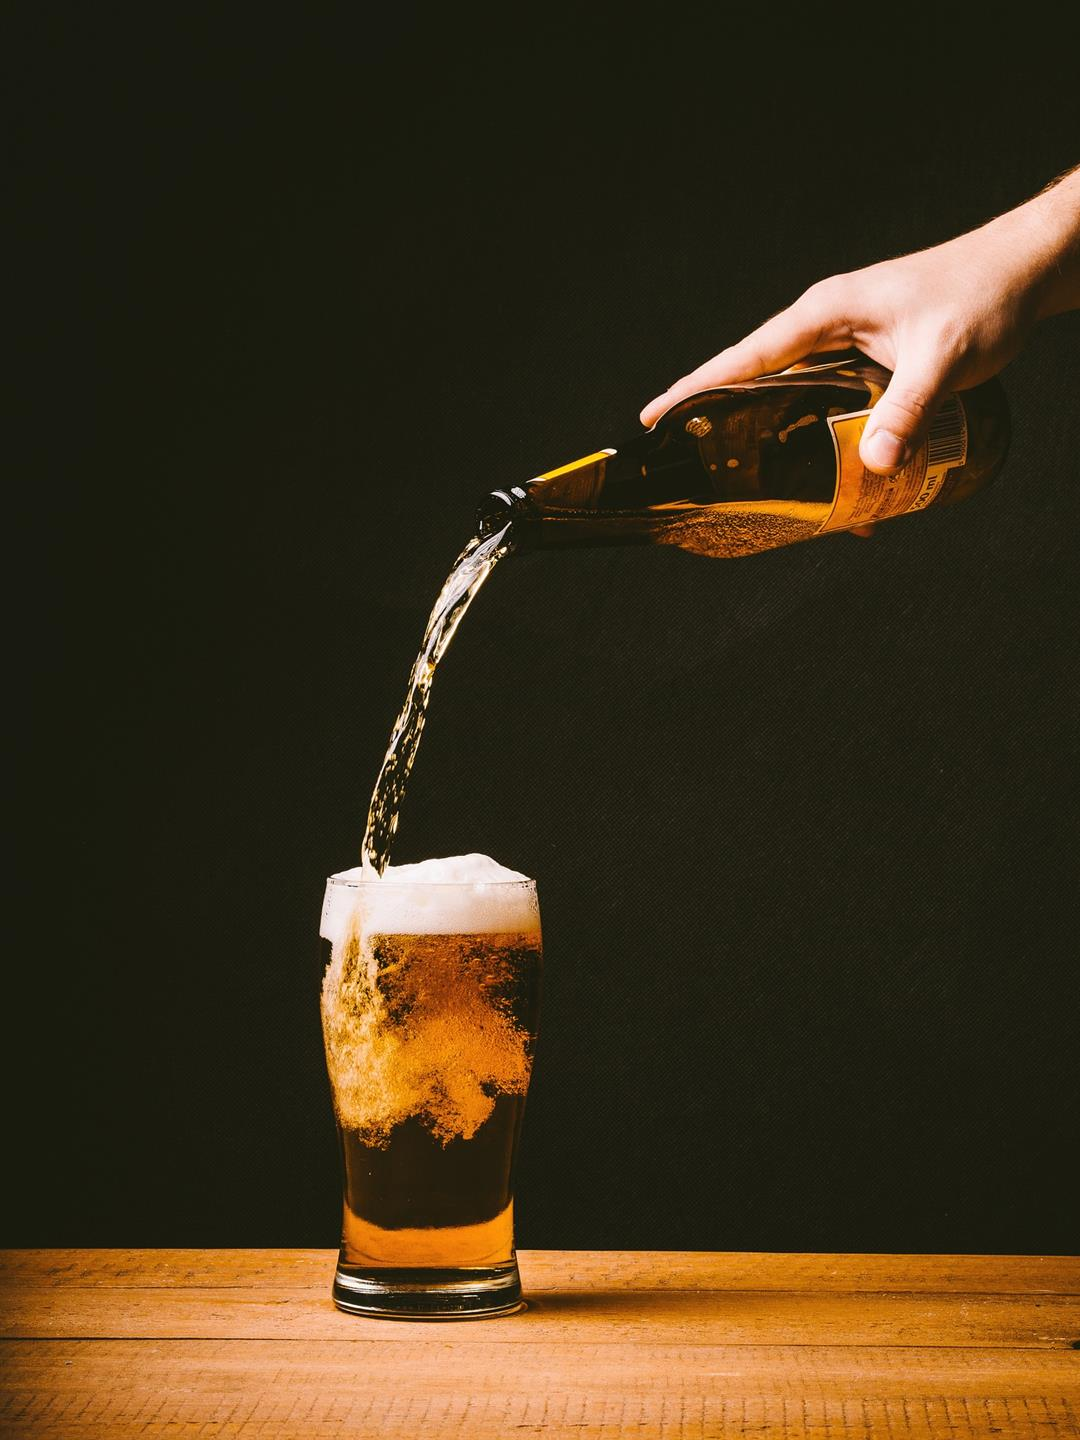 hand holding a beer bottle pouring it into a glass